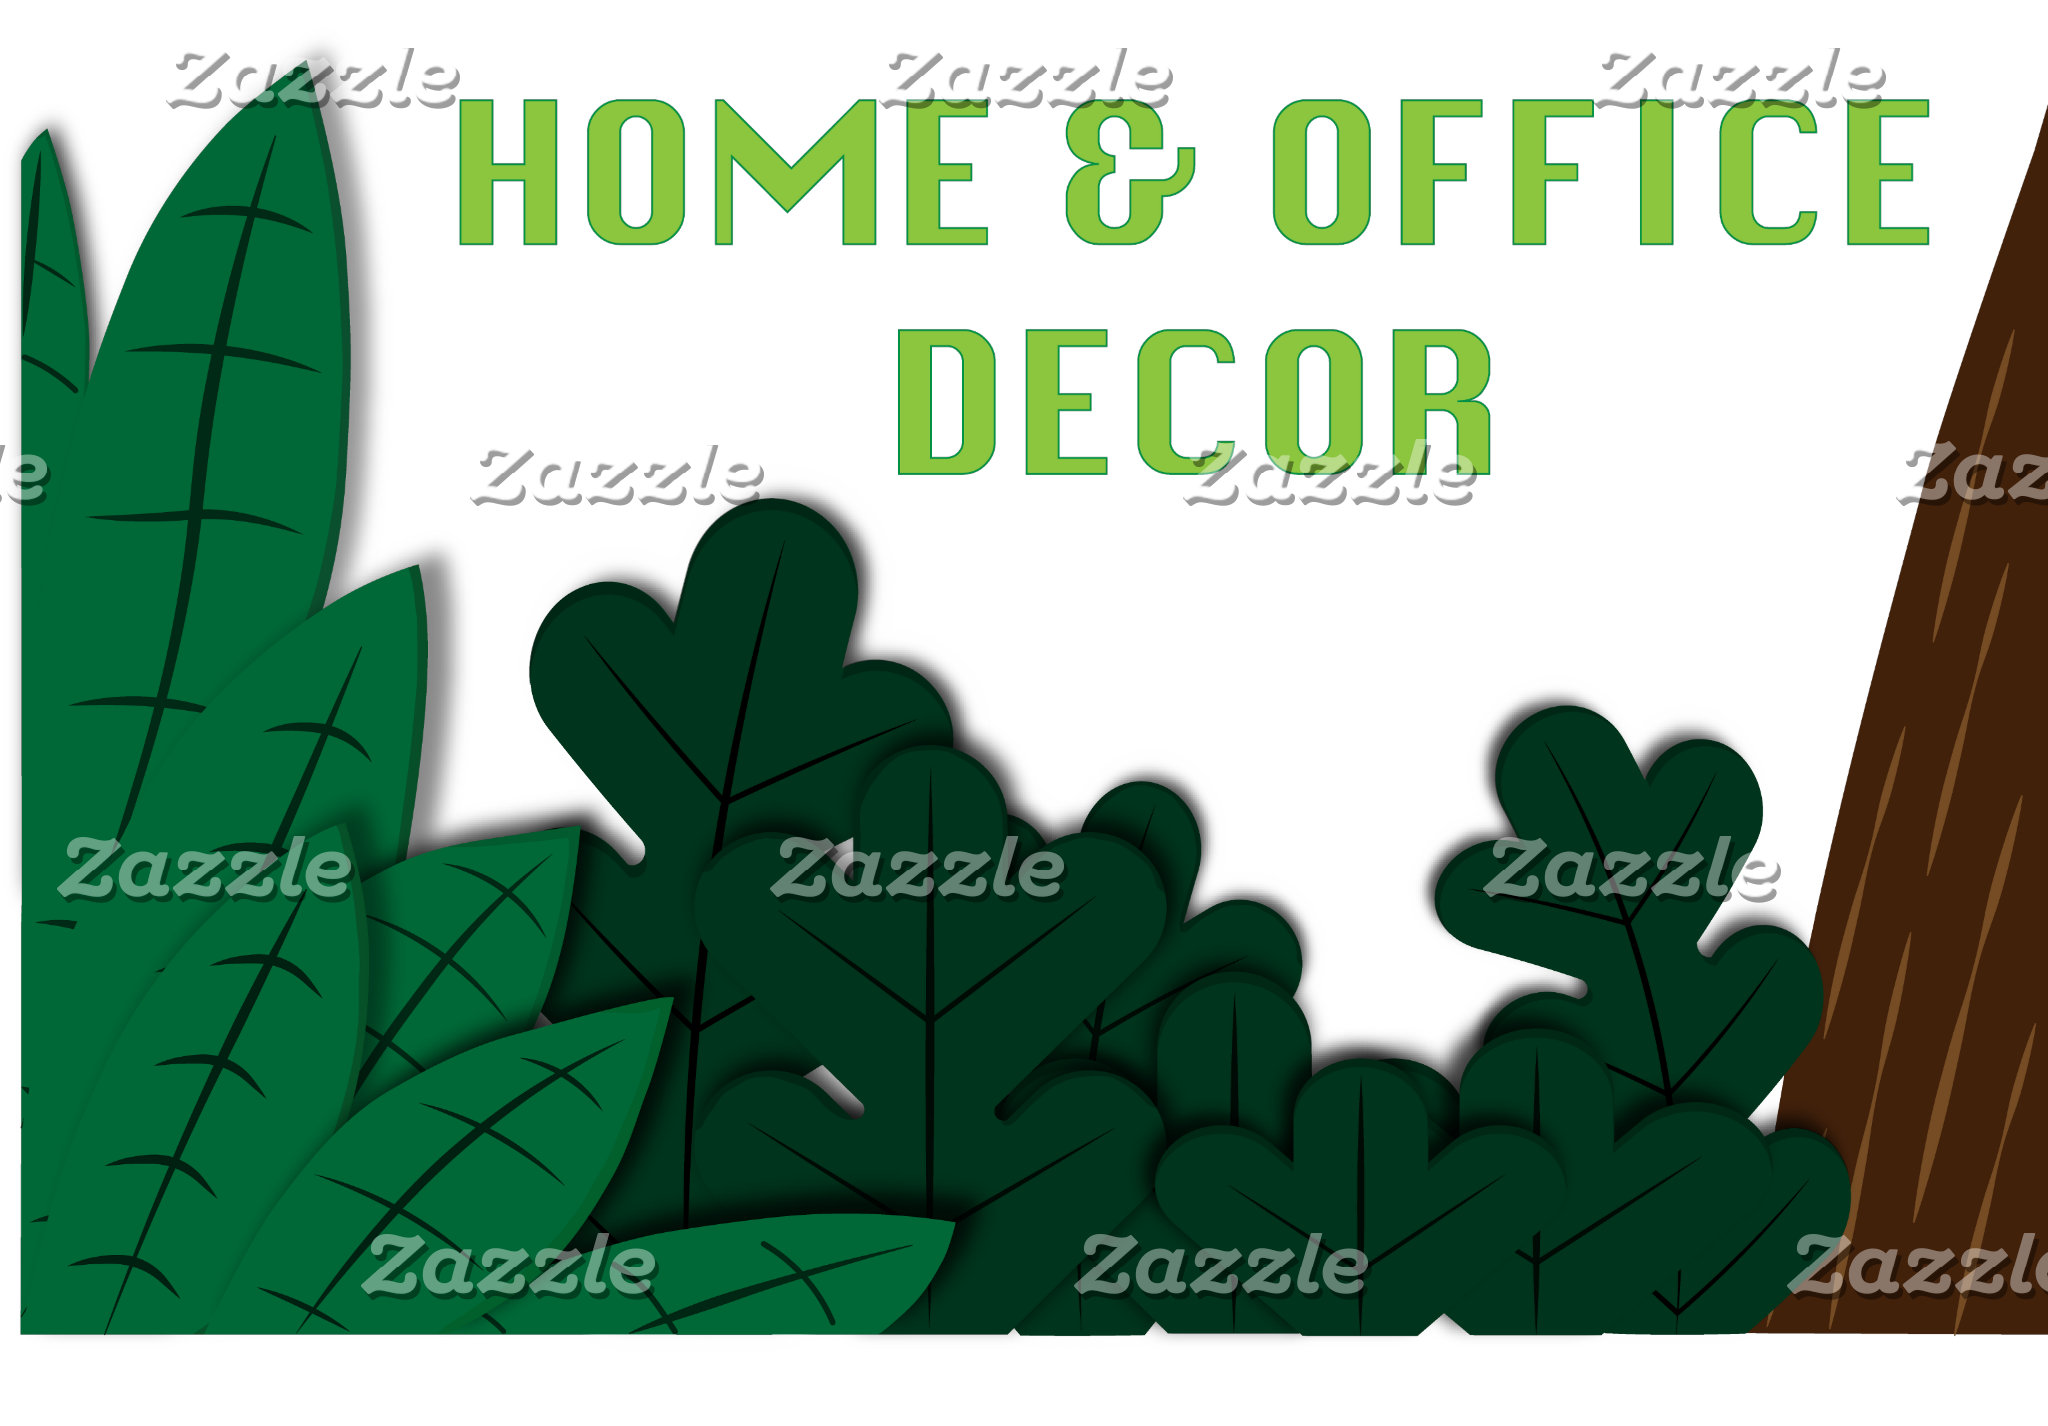 Home & Office Decor